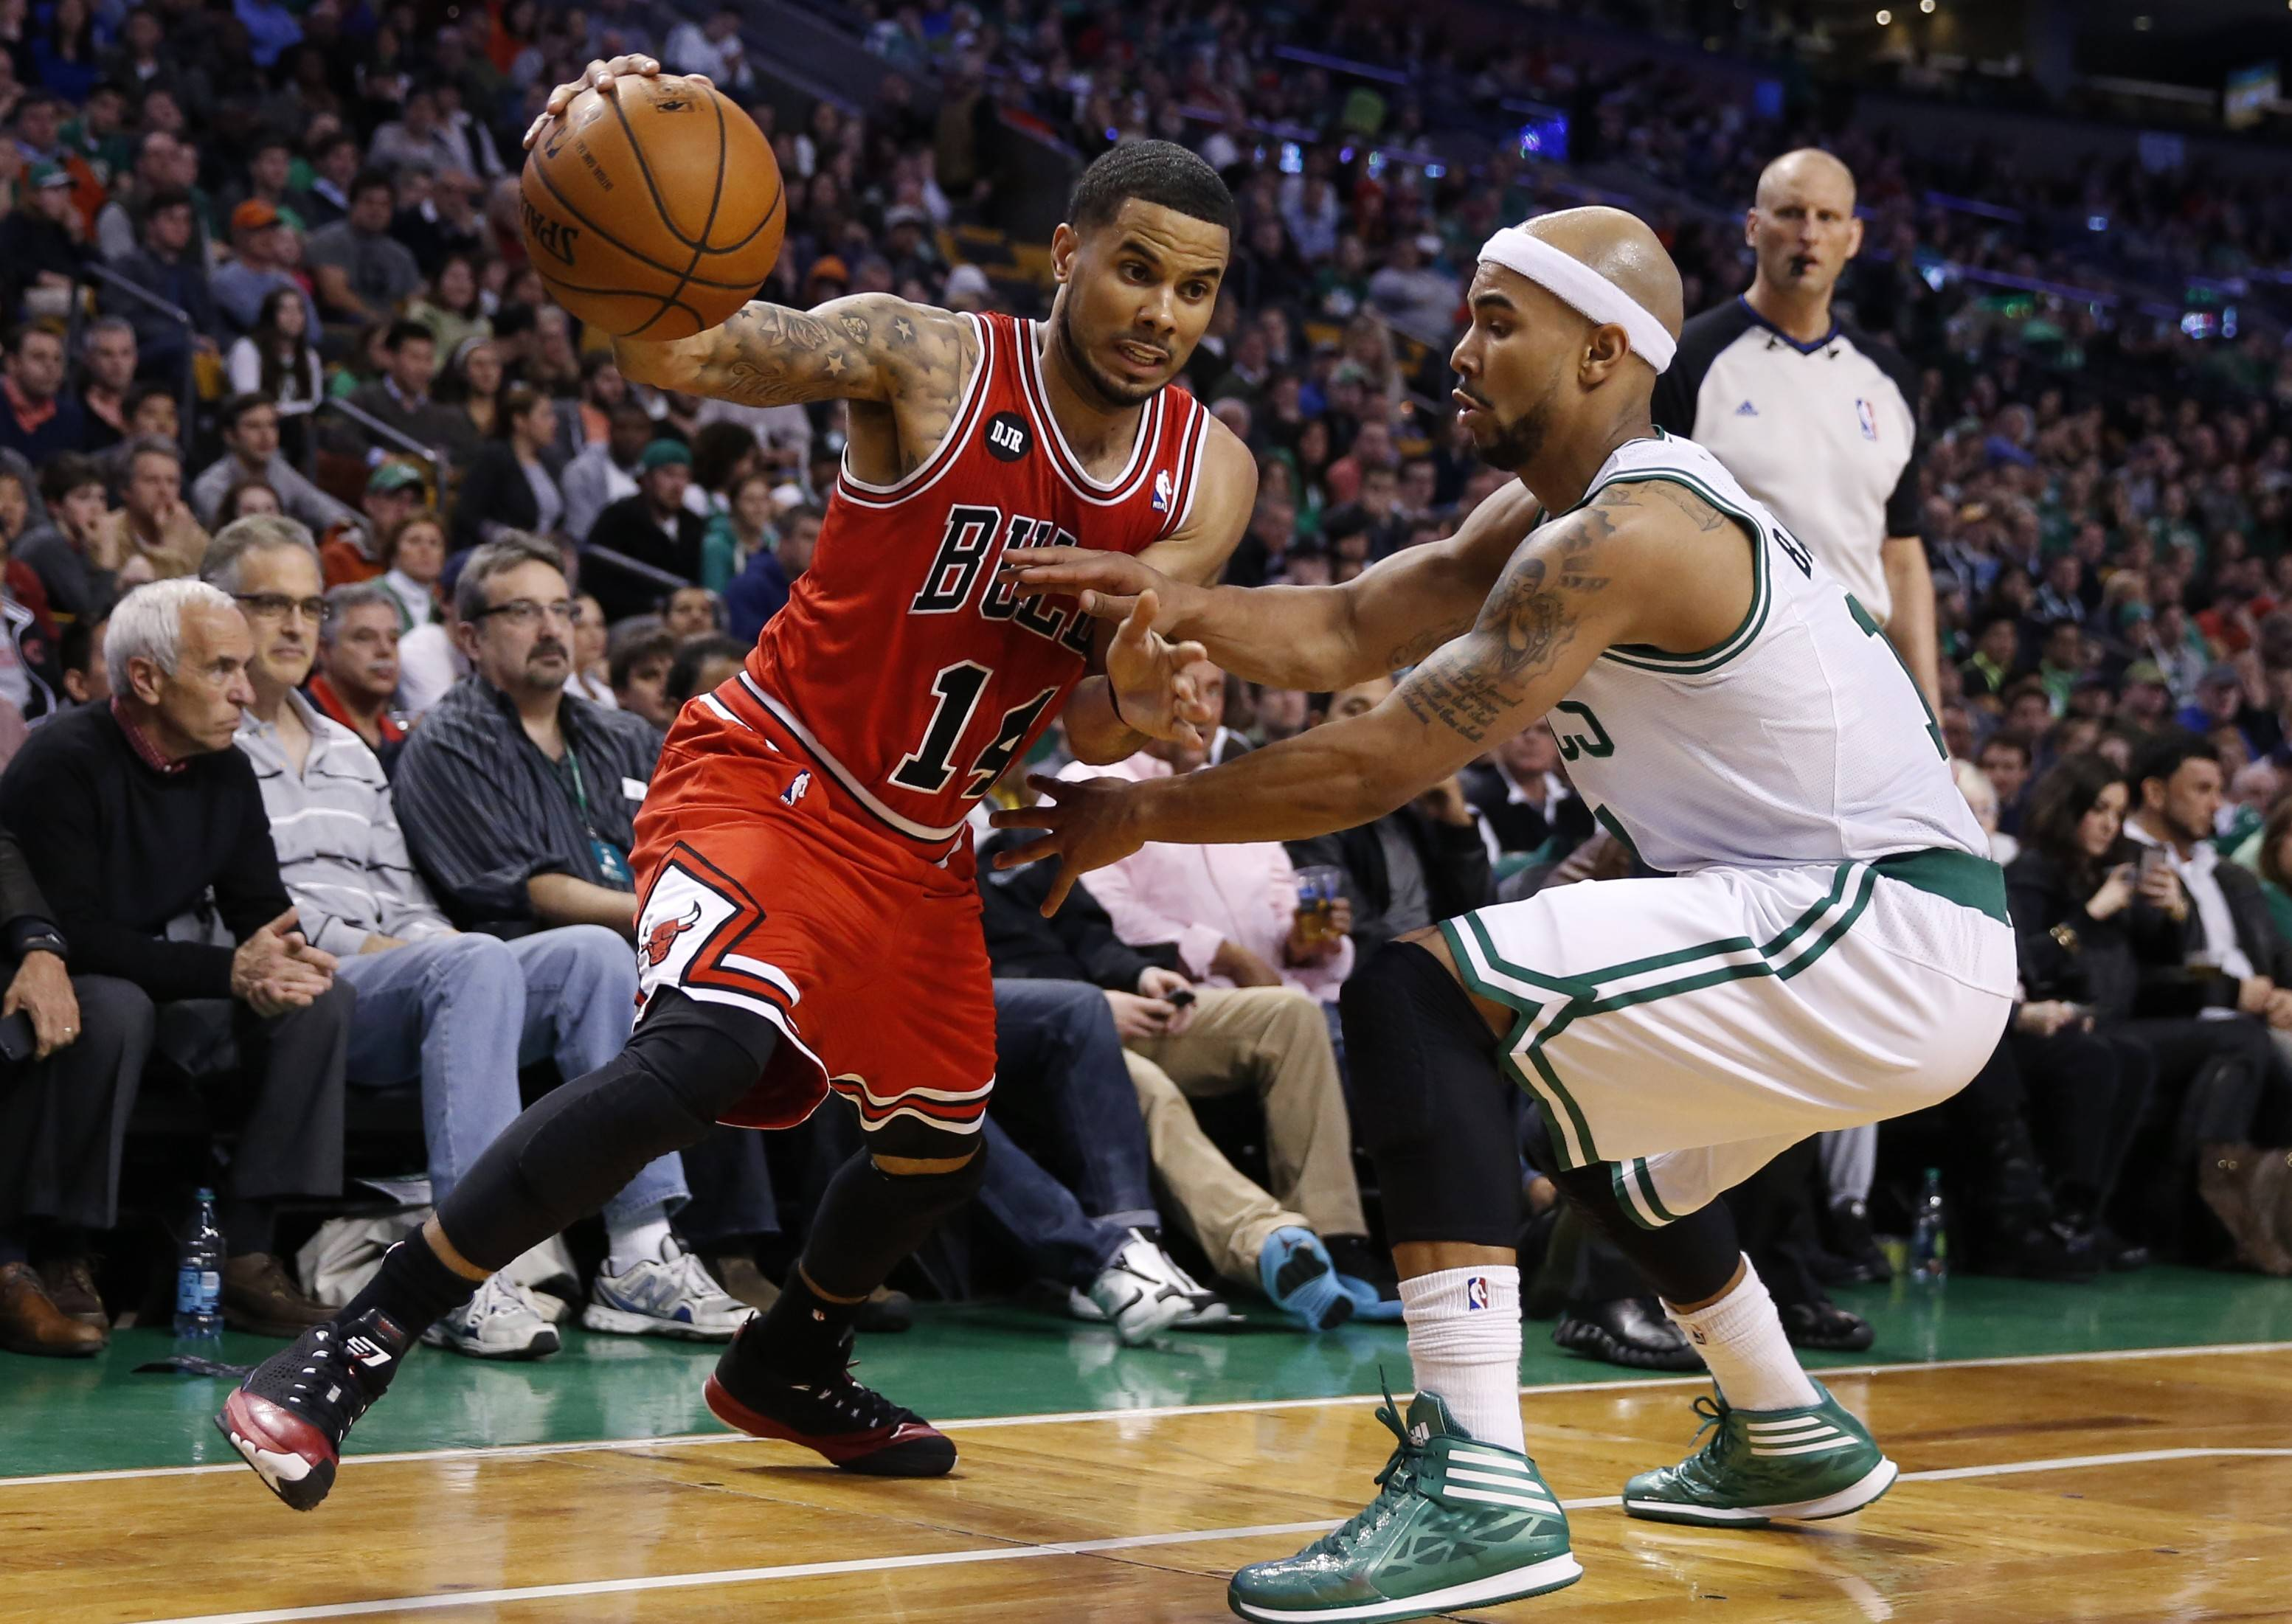 Chicago Bulls' D.J. Augustin (14) drives past Boston Celtics' Jerryd Bayless in the second quarter of an NBA basketball game in Boston, Sunday, March 30, 2014.